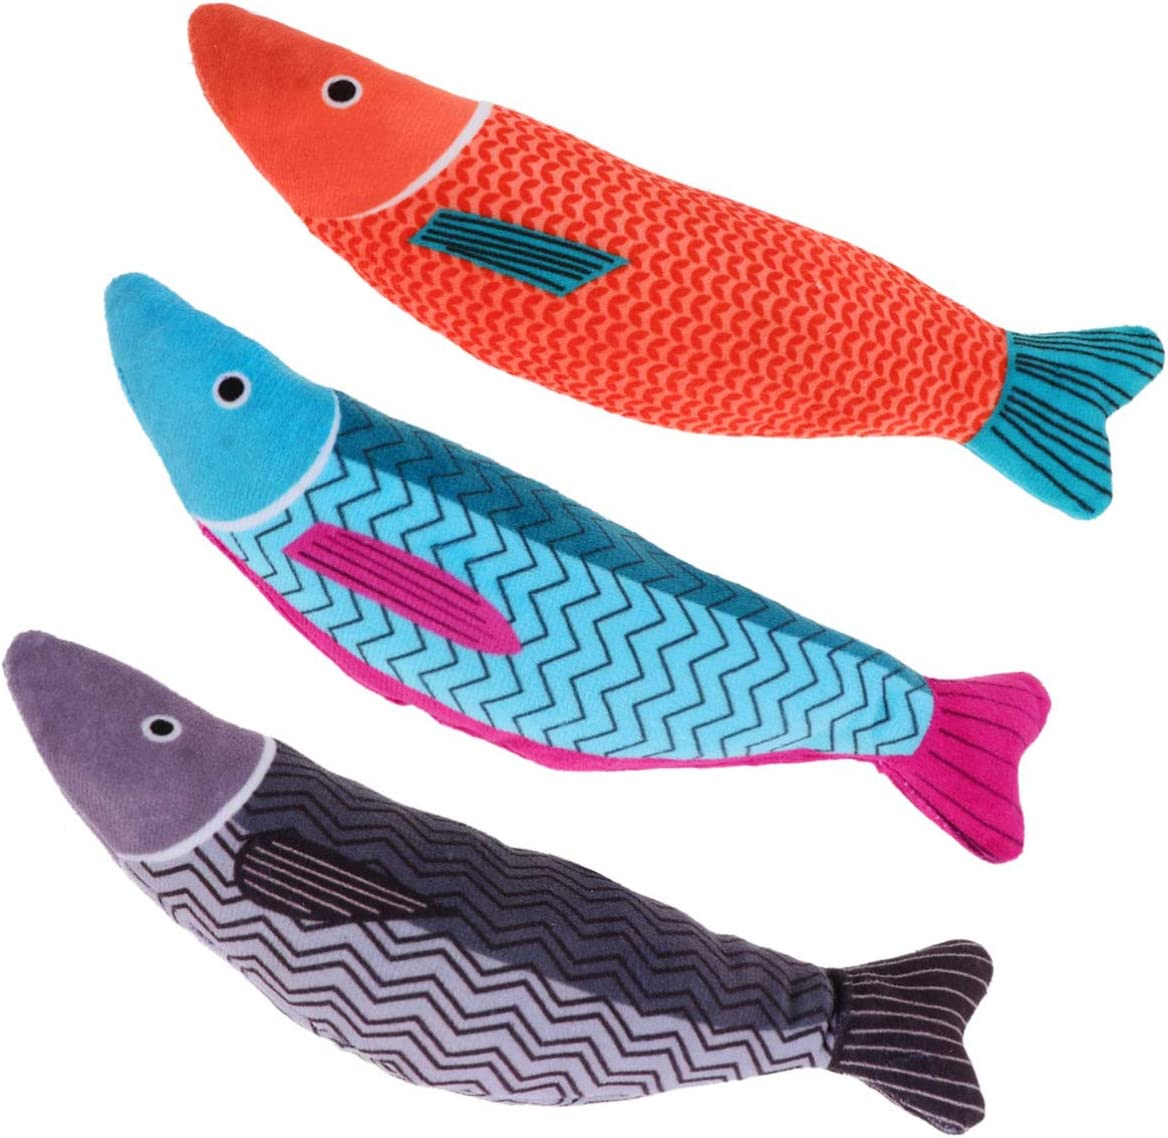 POPETPOP Catnip Toys- Louisville-Jefferson County Mall Fish Cat Toy Indo Toys for Interactive Max 71% OFF